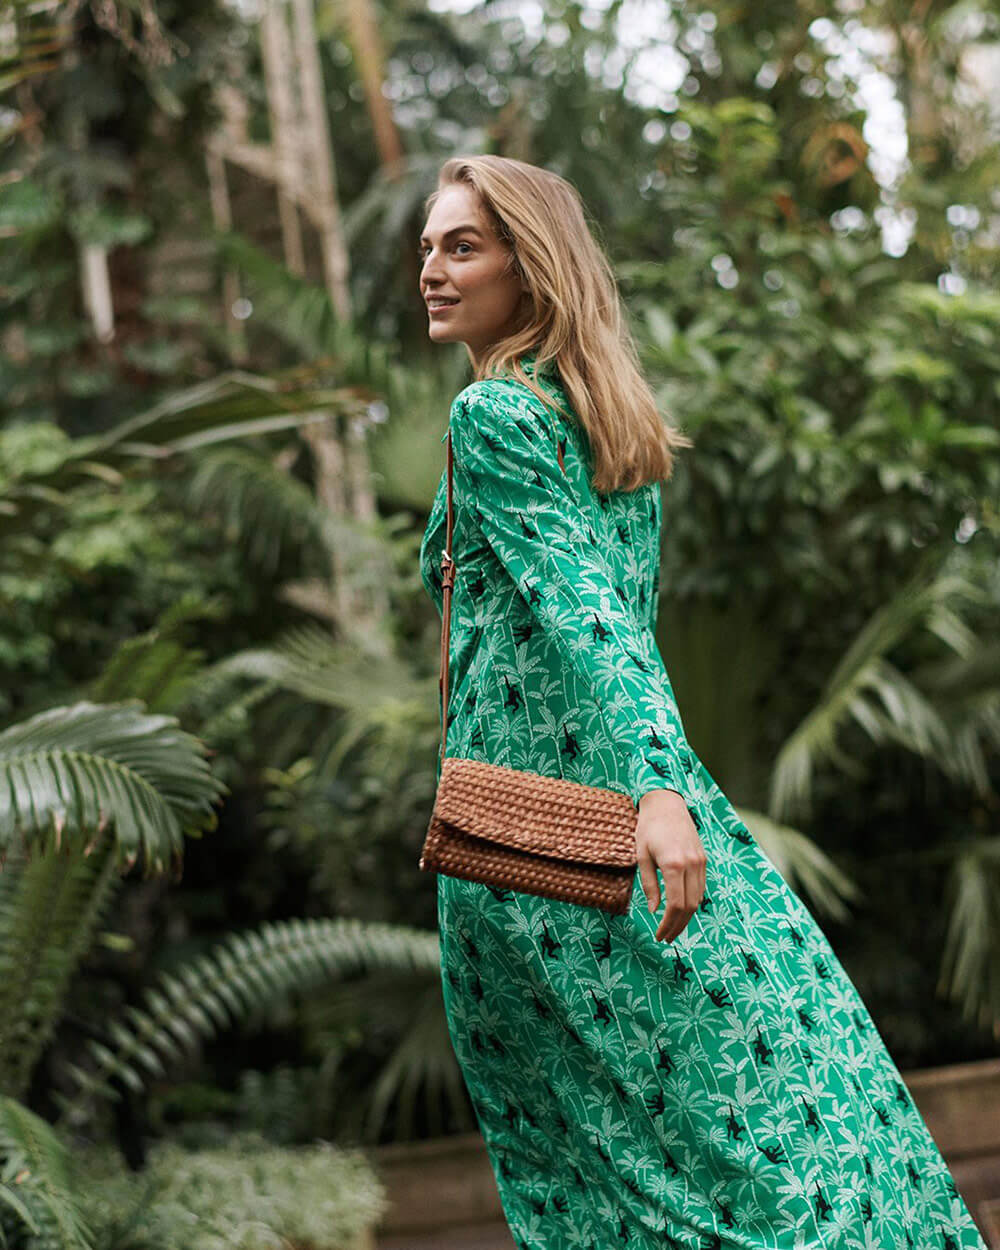 Boden sustainable clothing